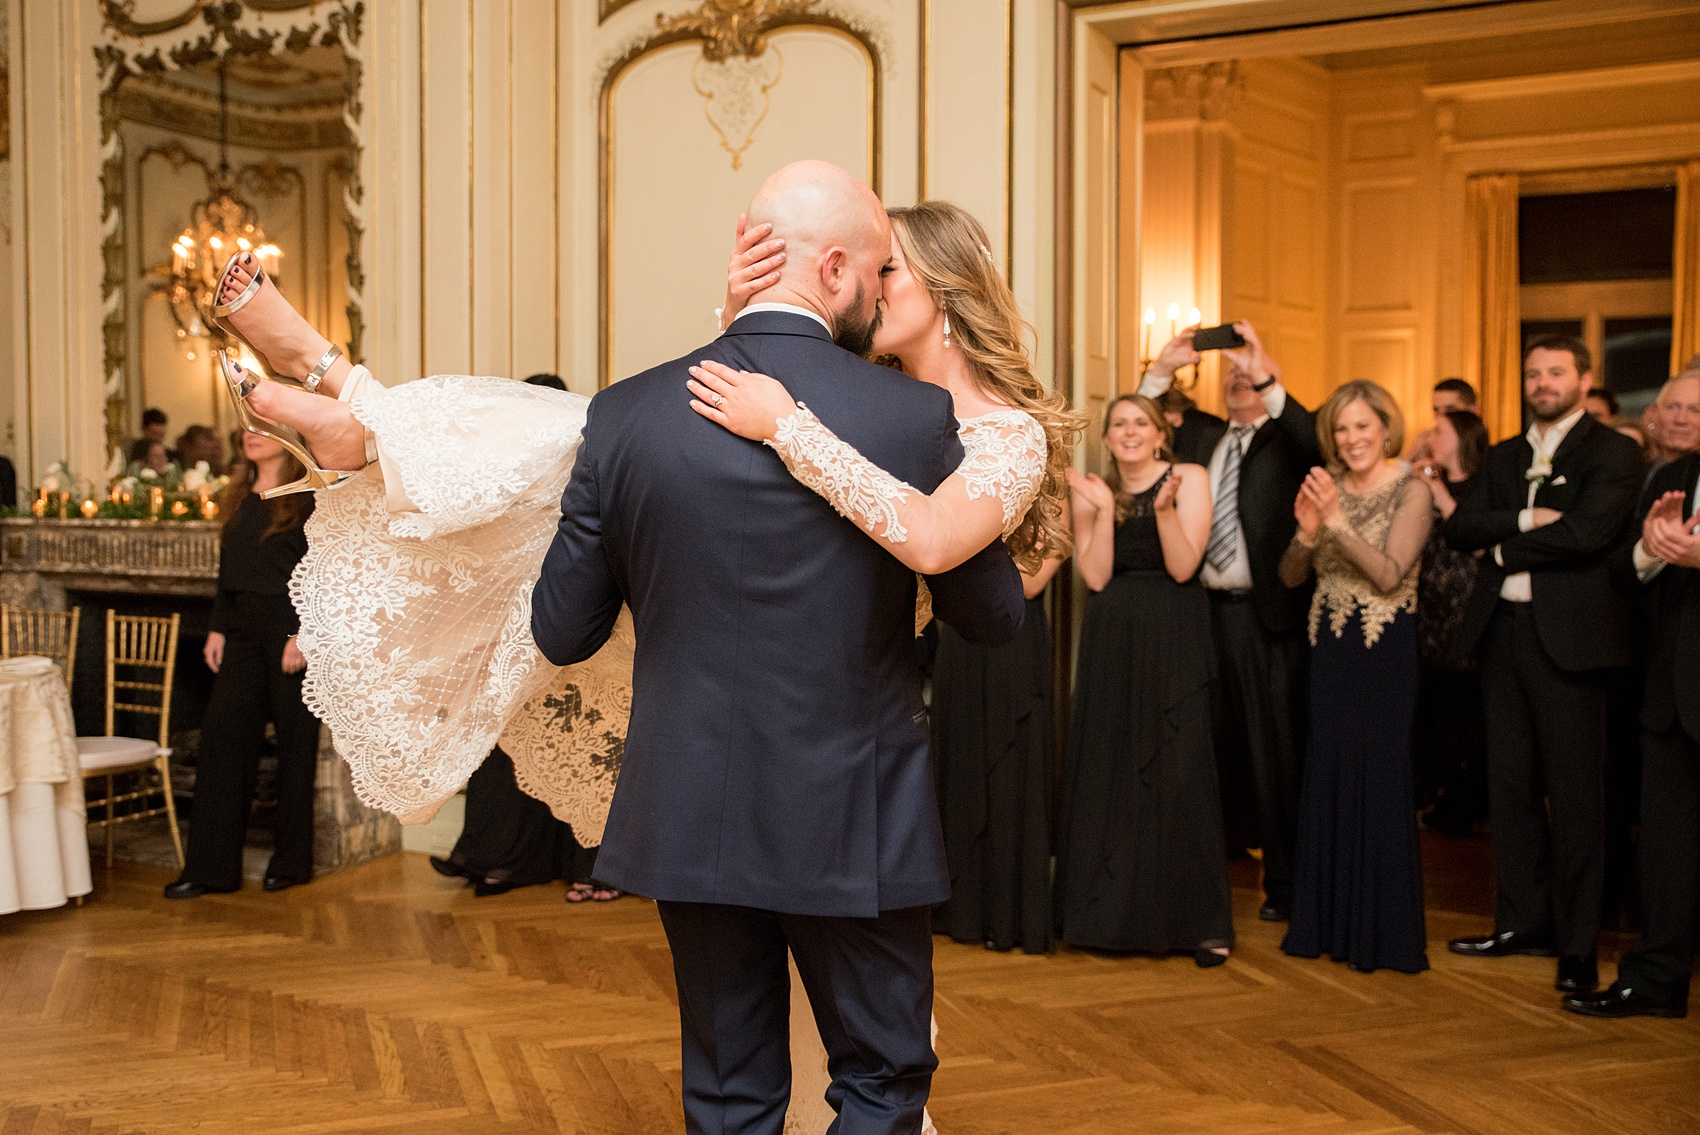 Wedding photos at Sleepy Hollow Country Club for a winter reception in January by Mikkel Paige Photography. They shared their first dance at their NY winter wedding, inside the ornate center room of the venue.